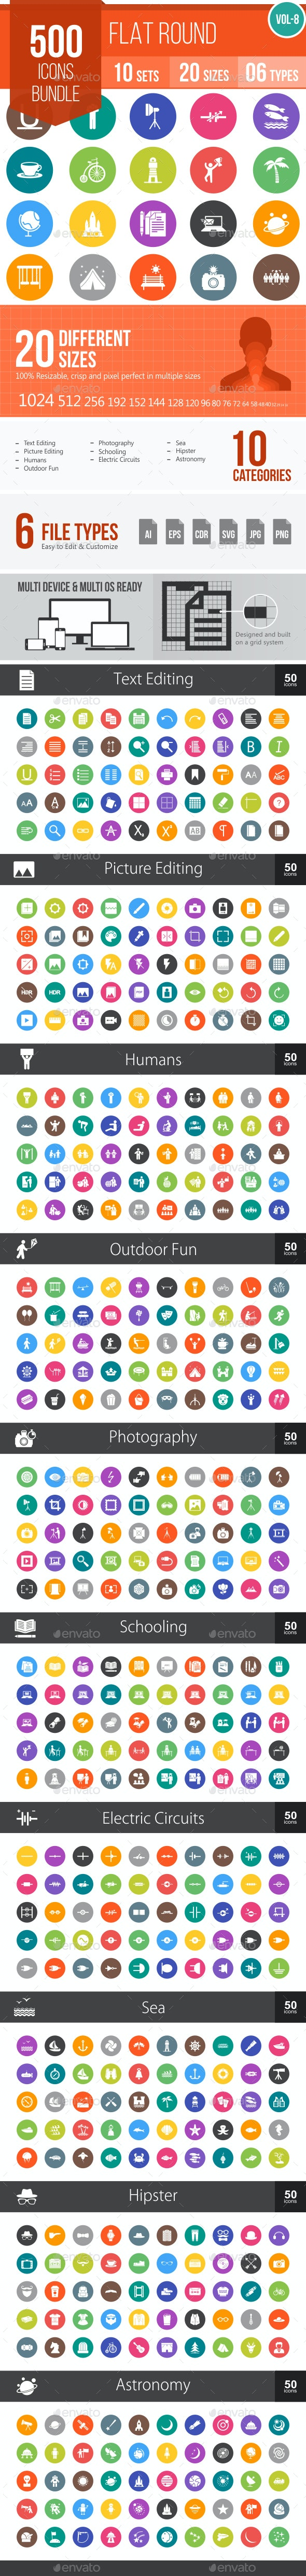 500 Vector Colorful Round Flat Icons Bundle (Vol-8)